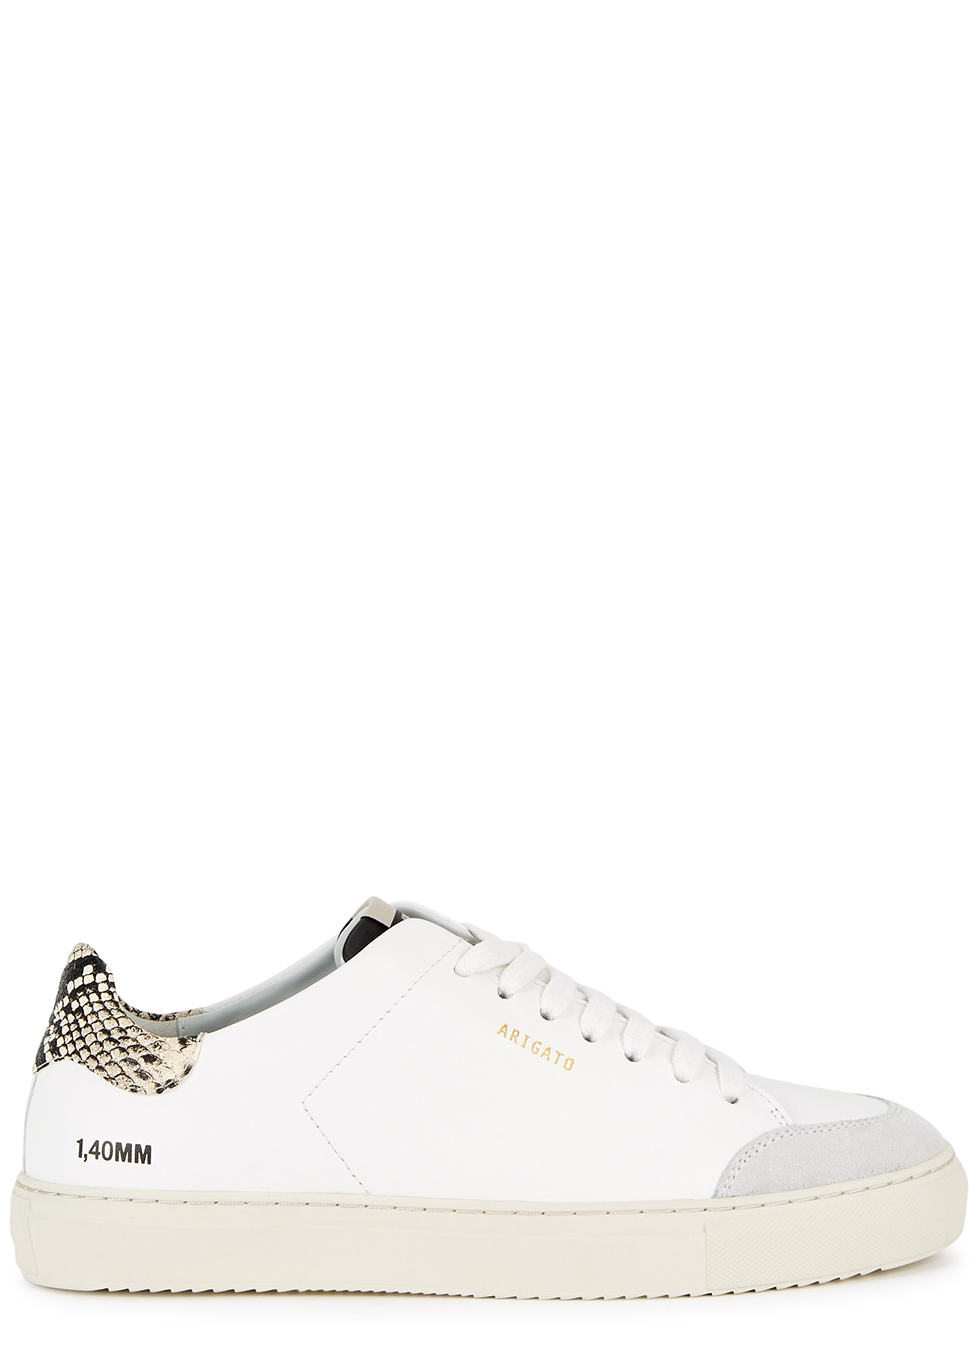 Clean 90 white leather sneakers